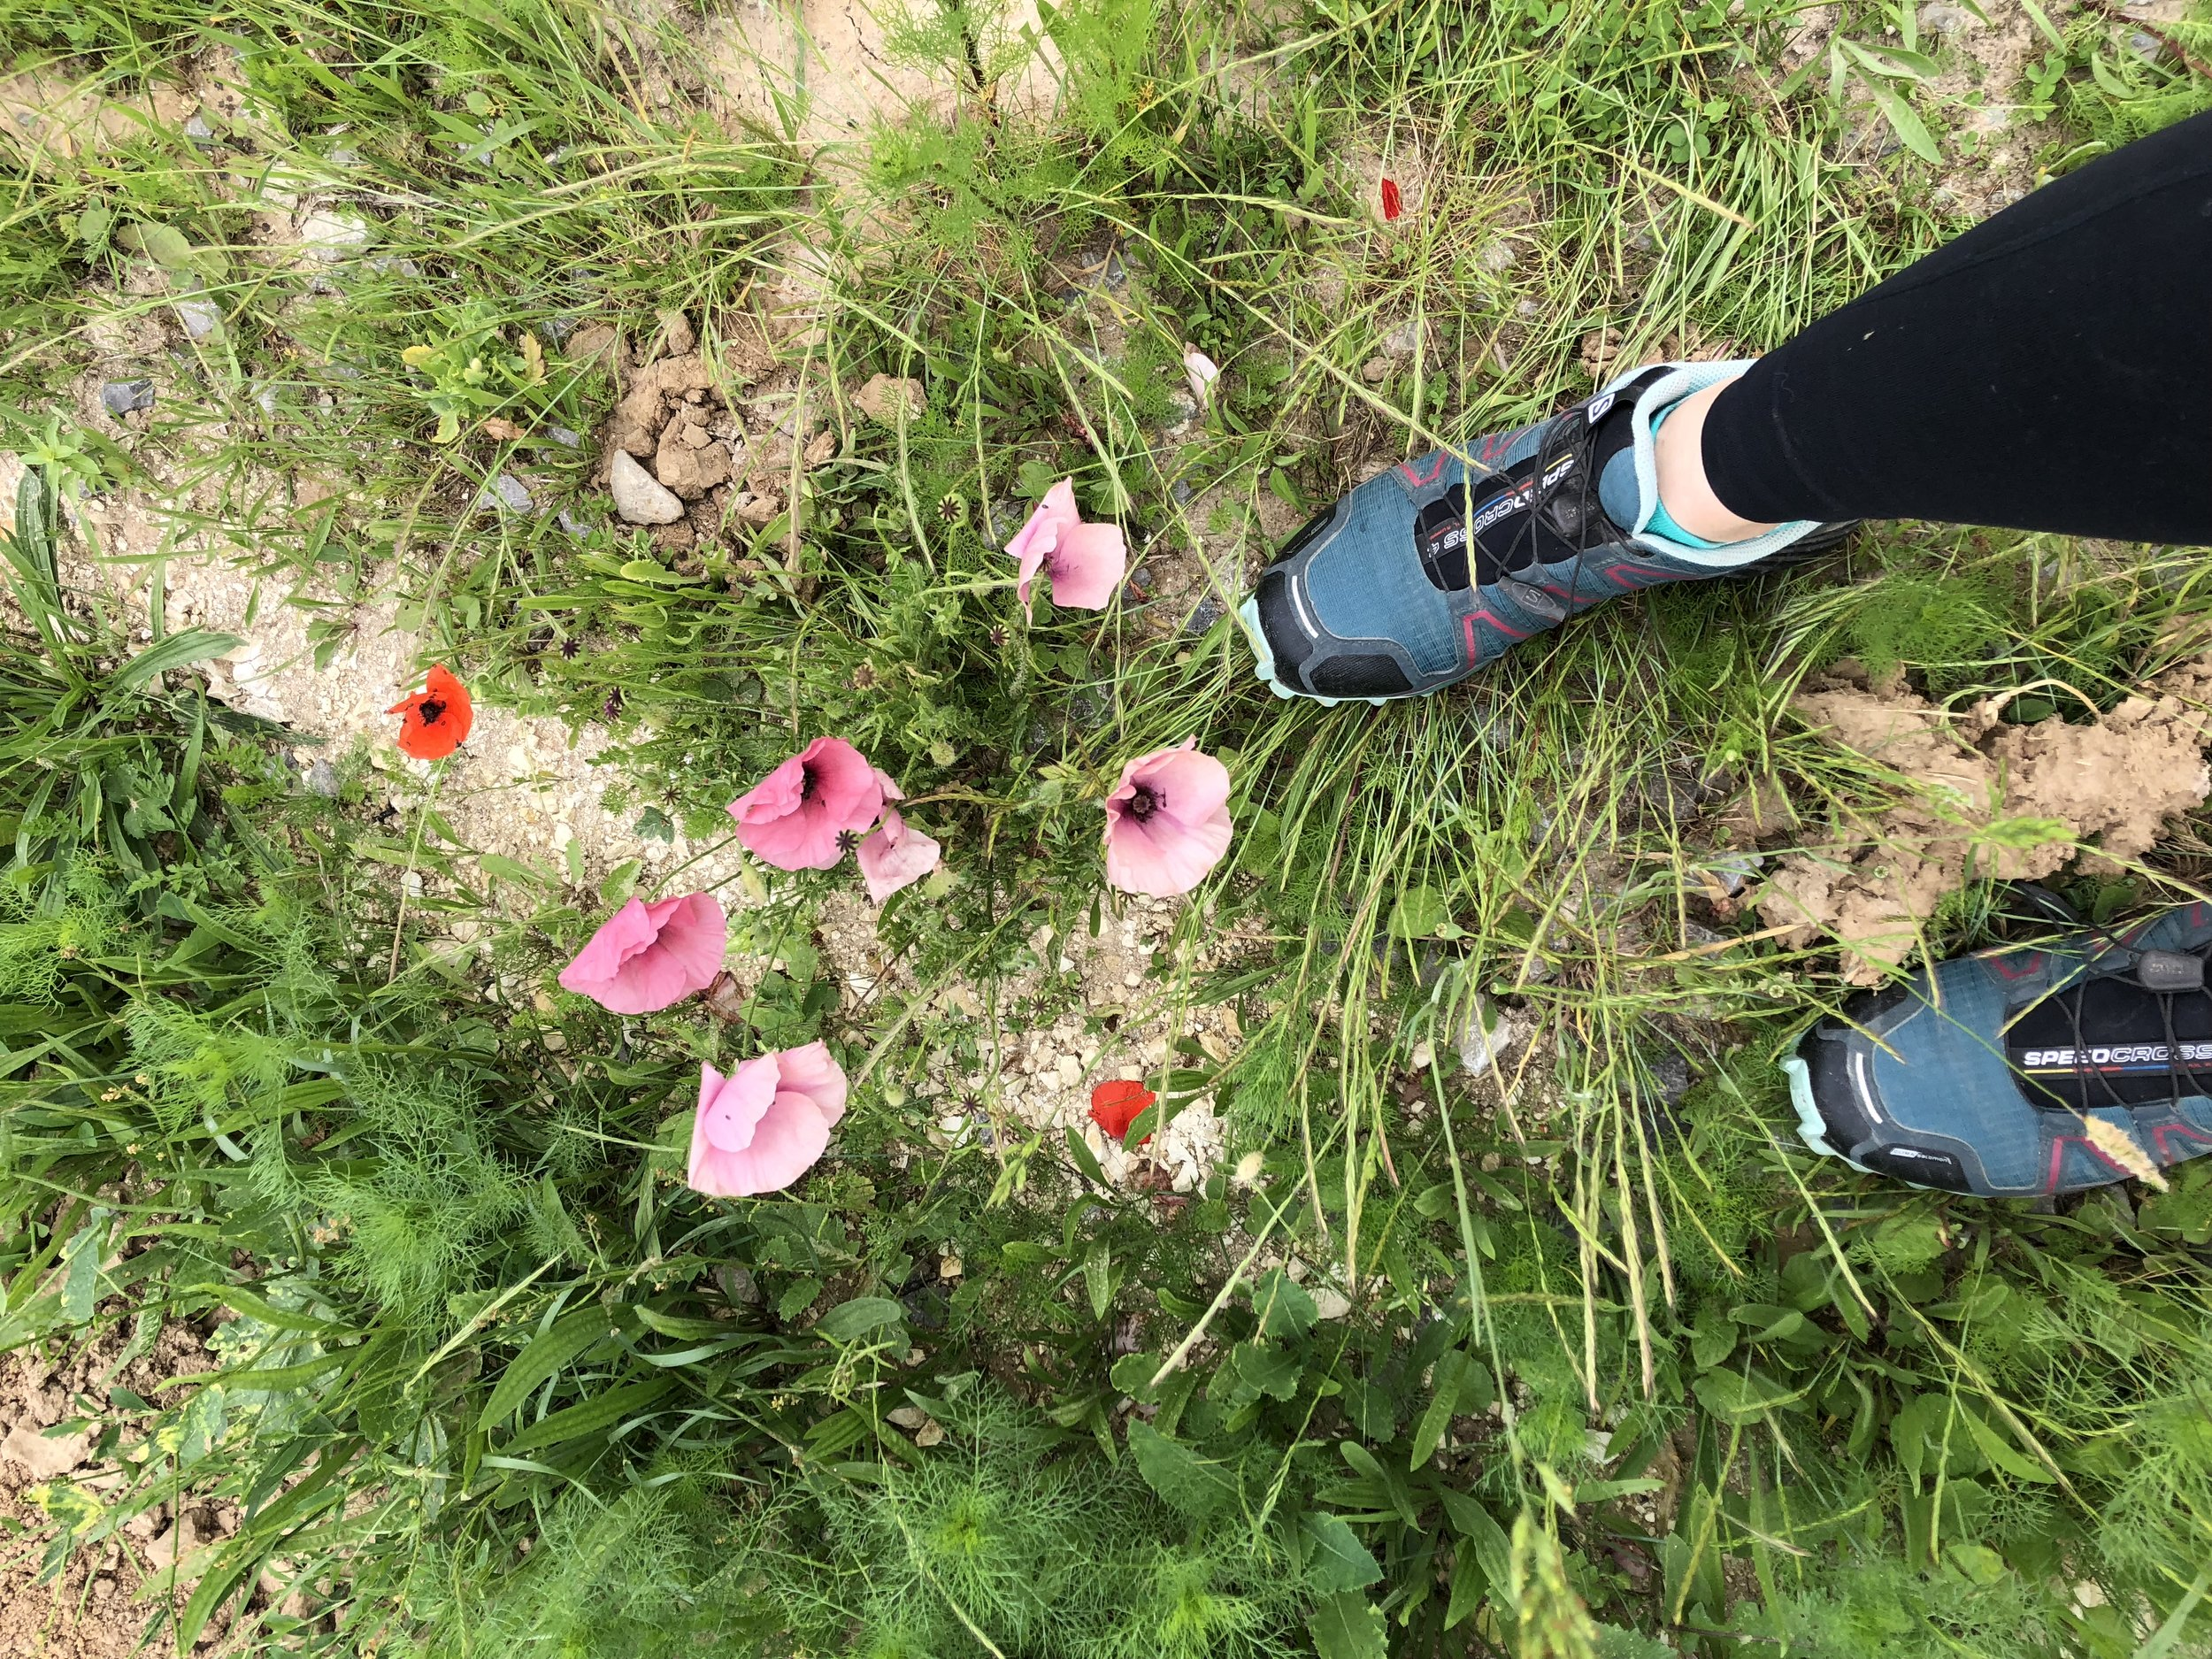 Never before seen pink poppies